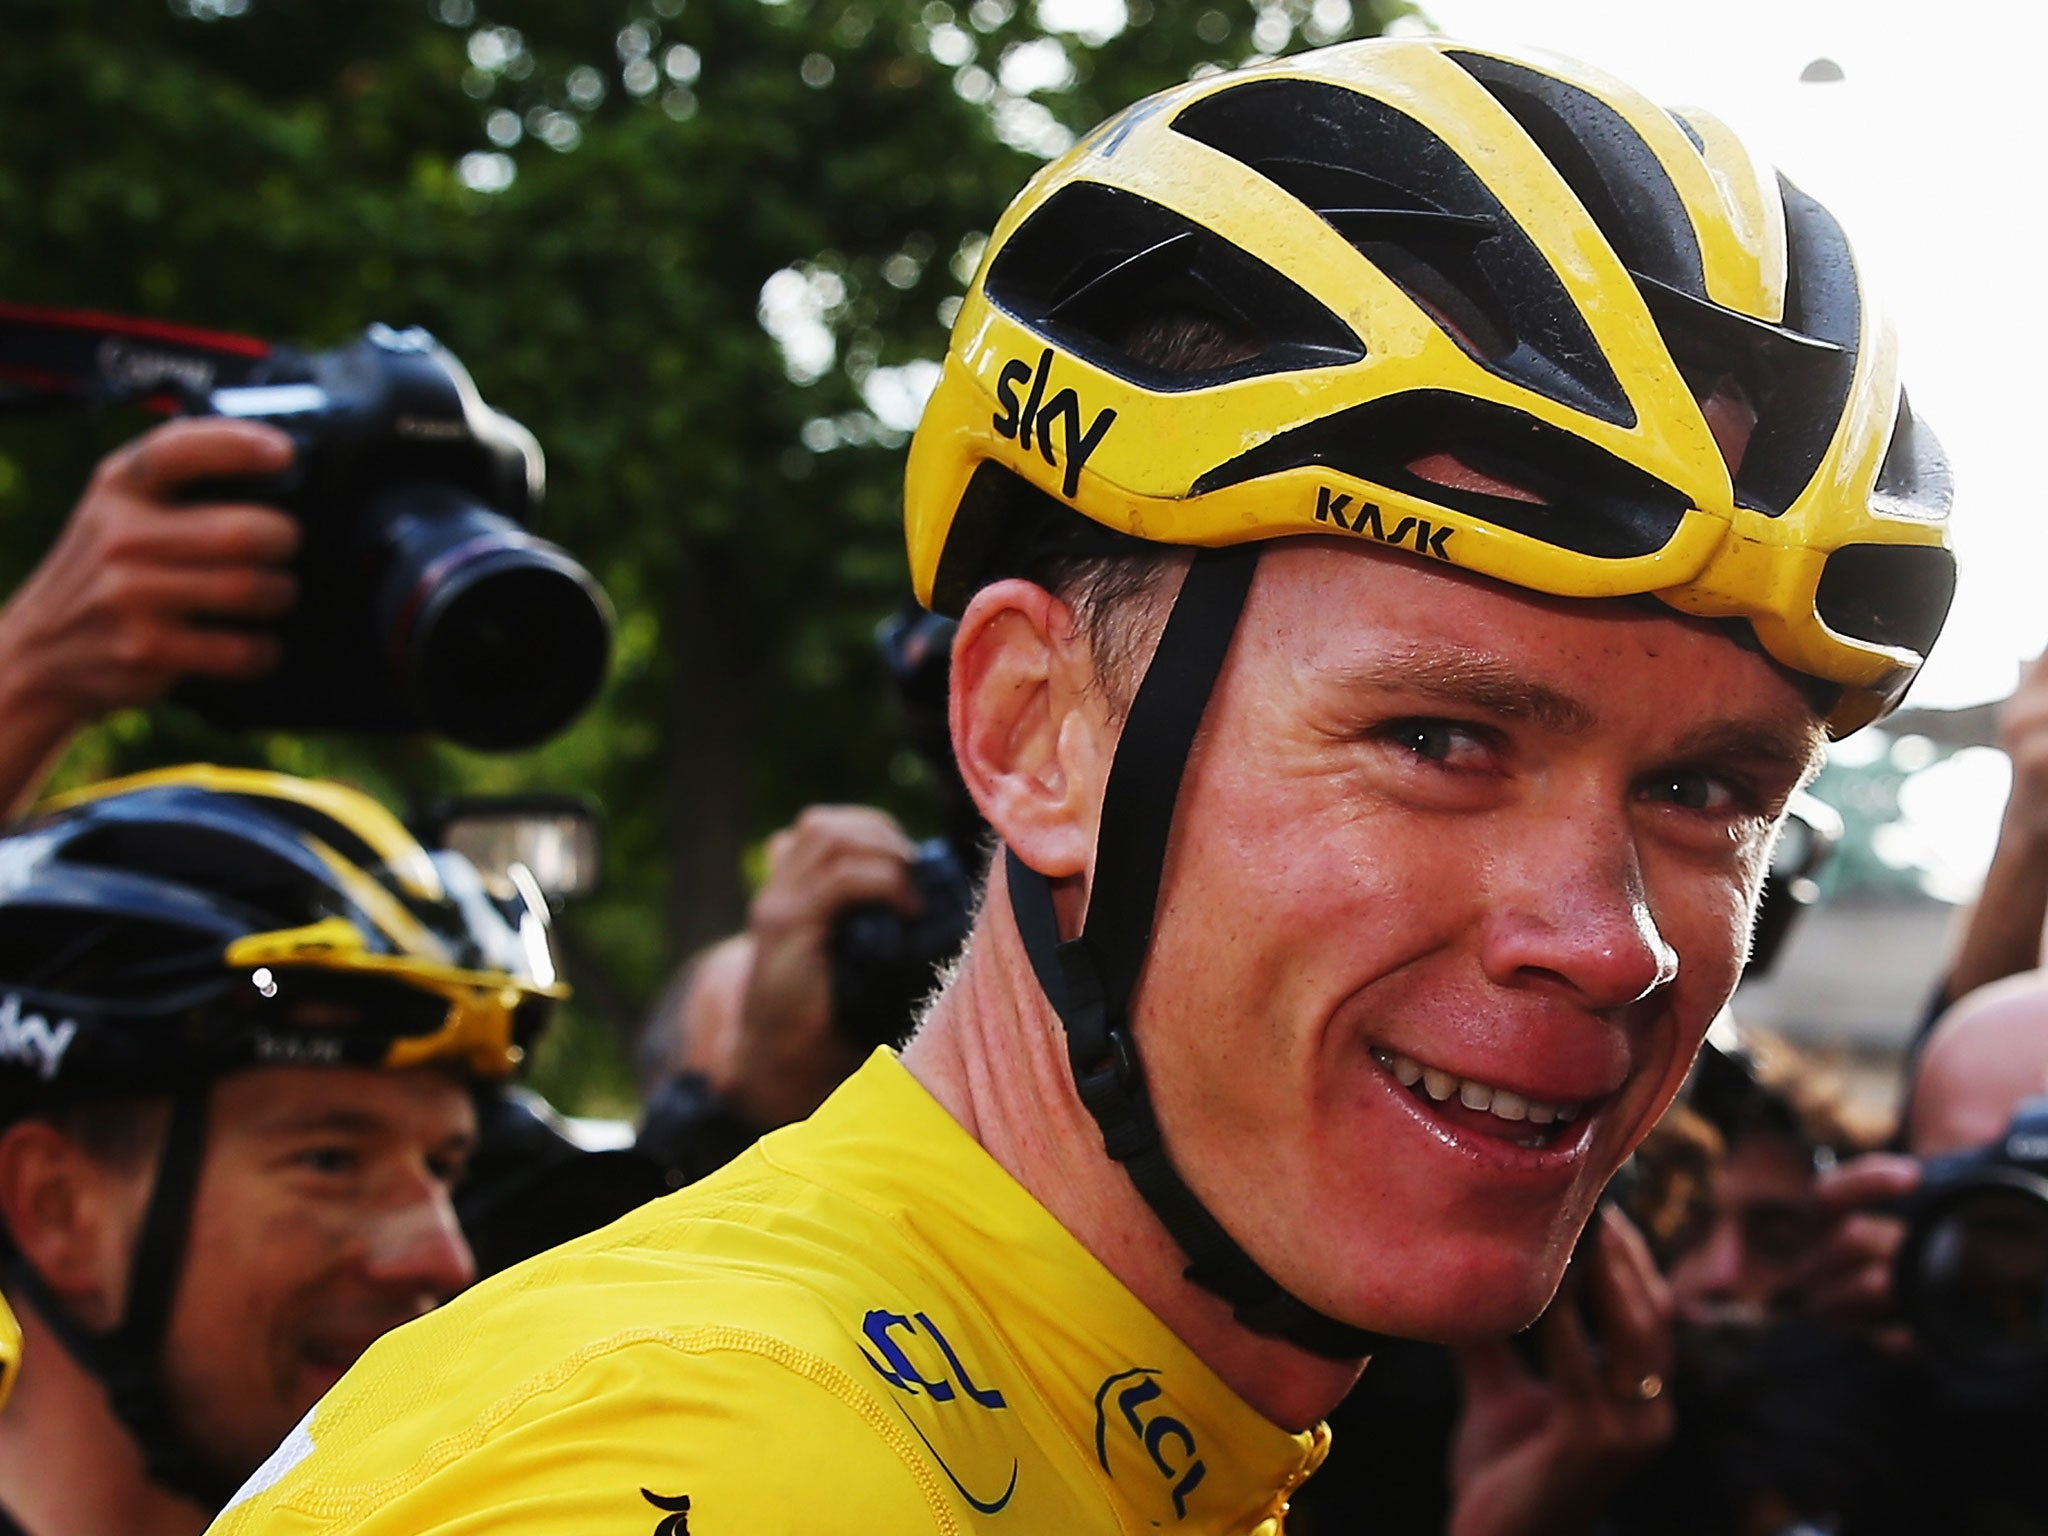 chris froome - photo #20